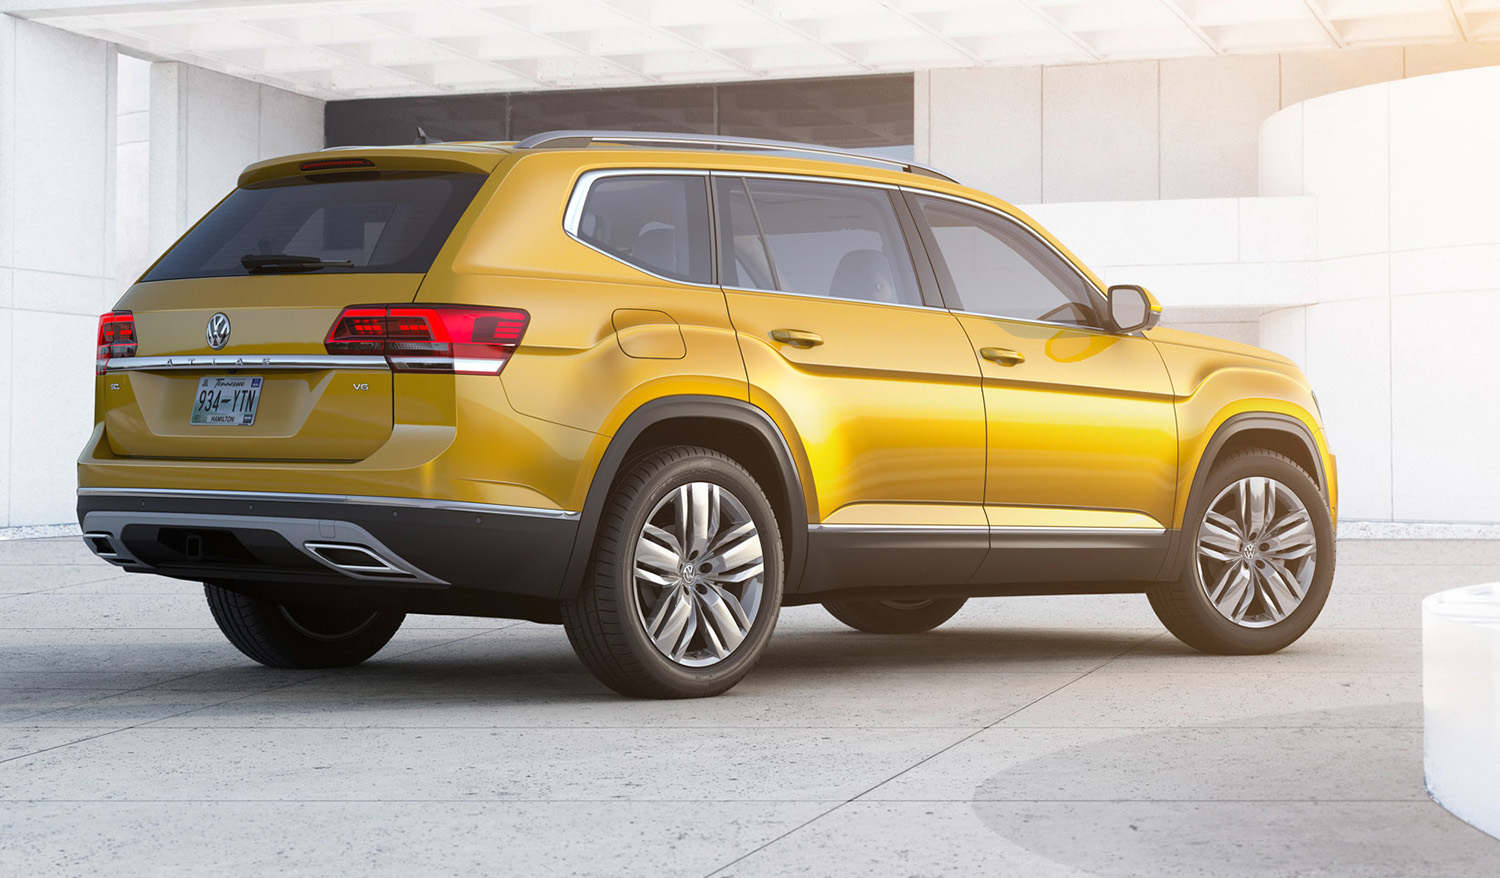 7 Seater Suv 2017 >> Volkswagen Atlas seven-seat SUV revealed - photos | CarAdvice